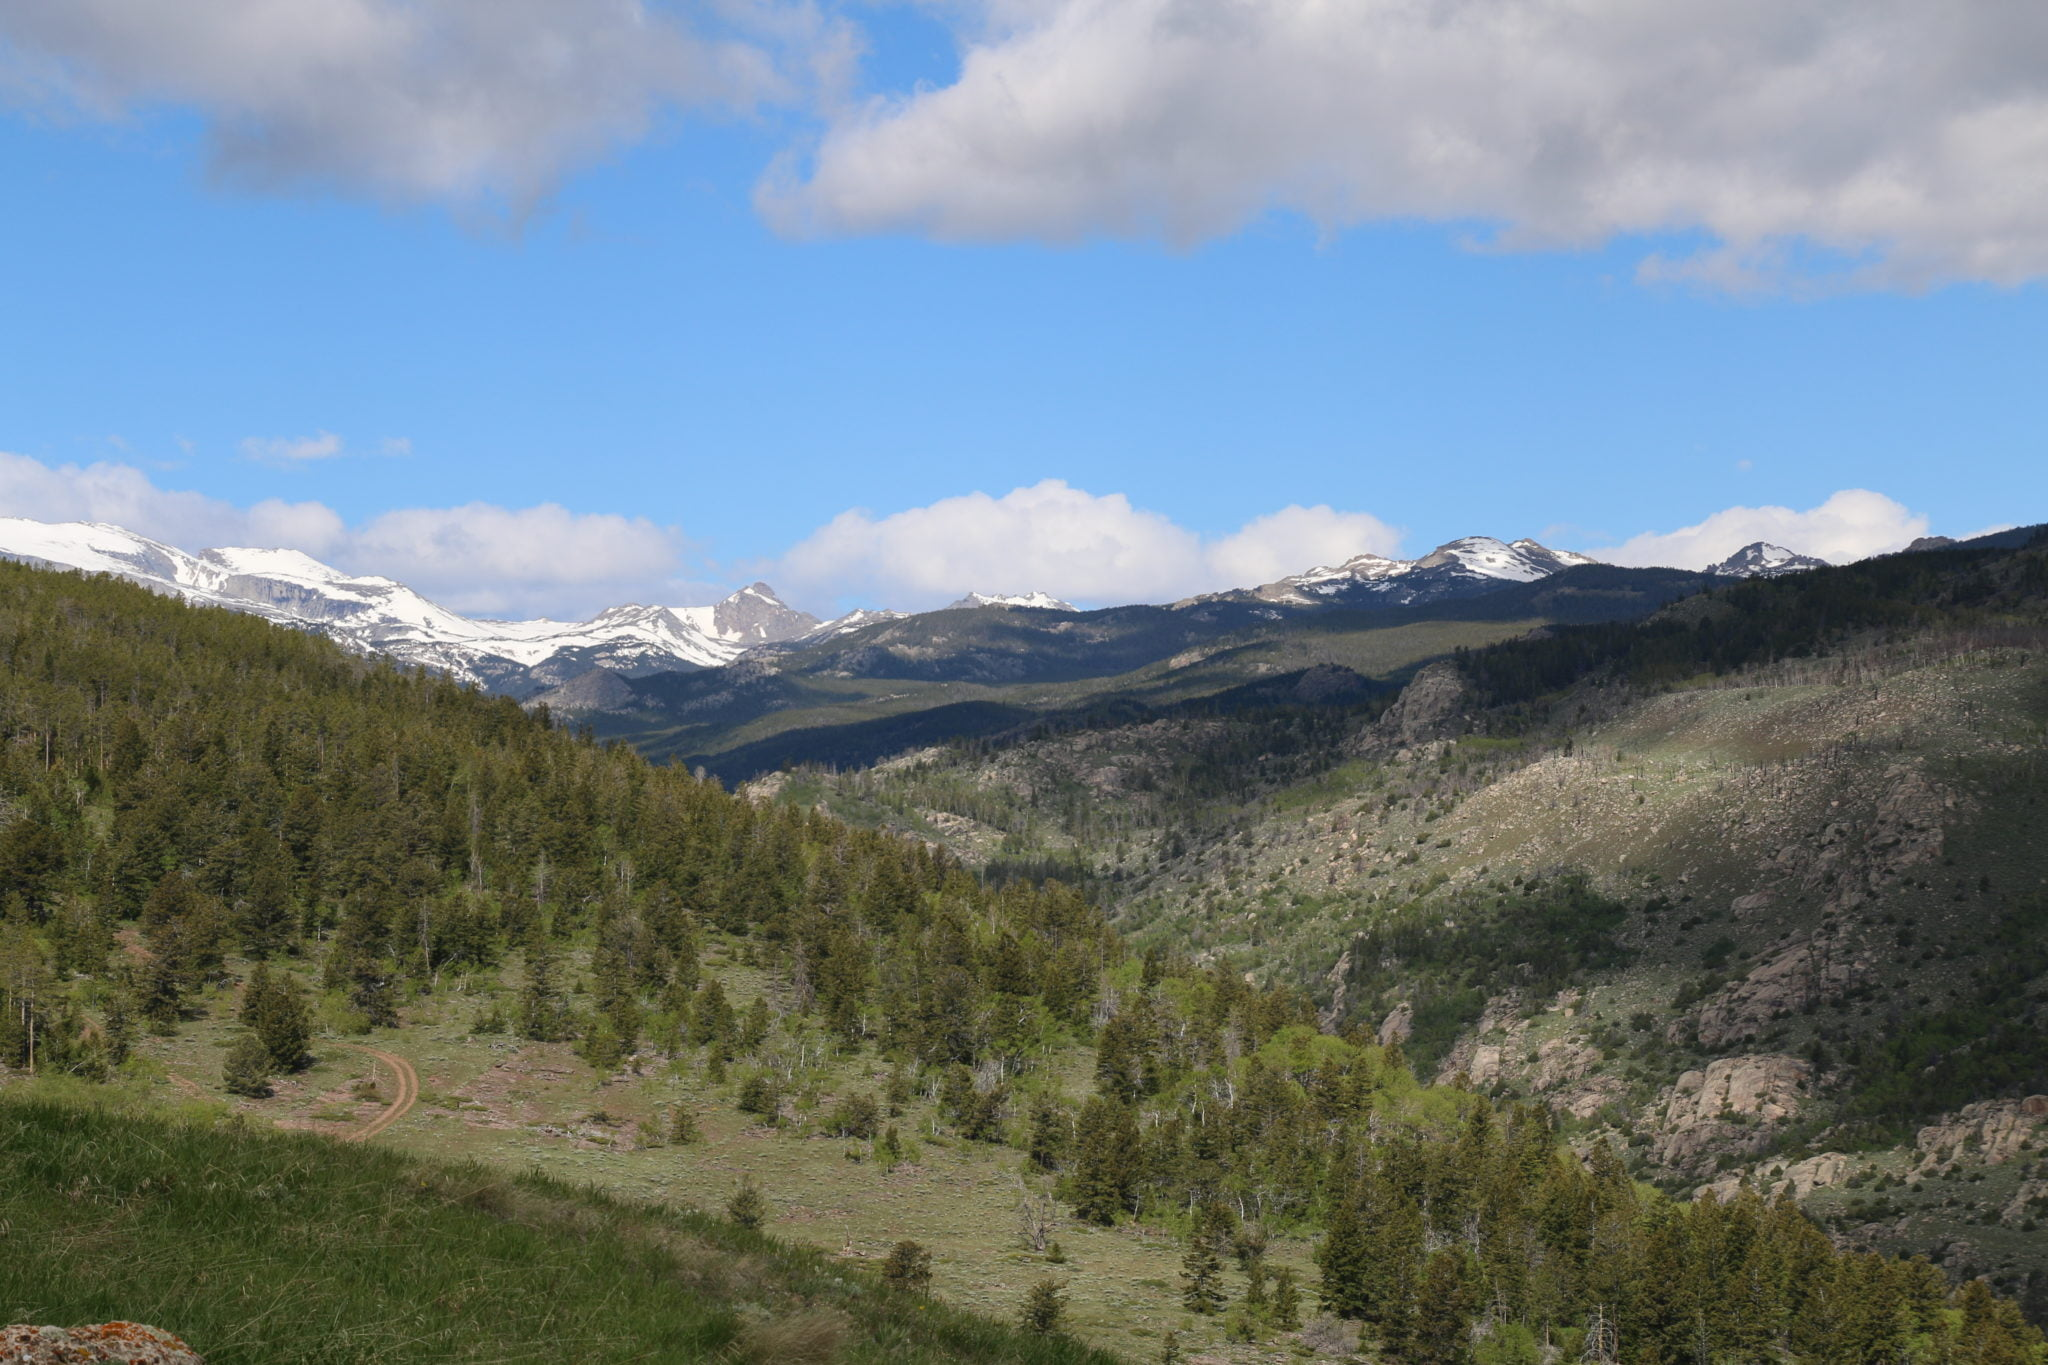 The Wind River Mountain Range